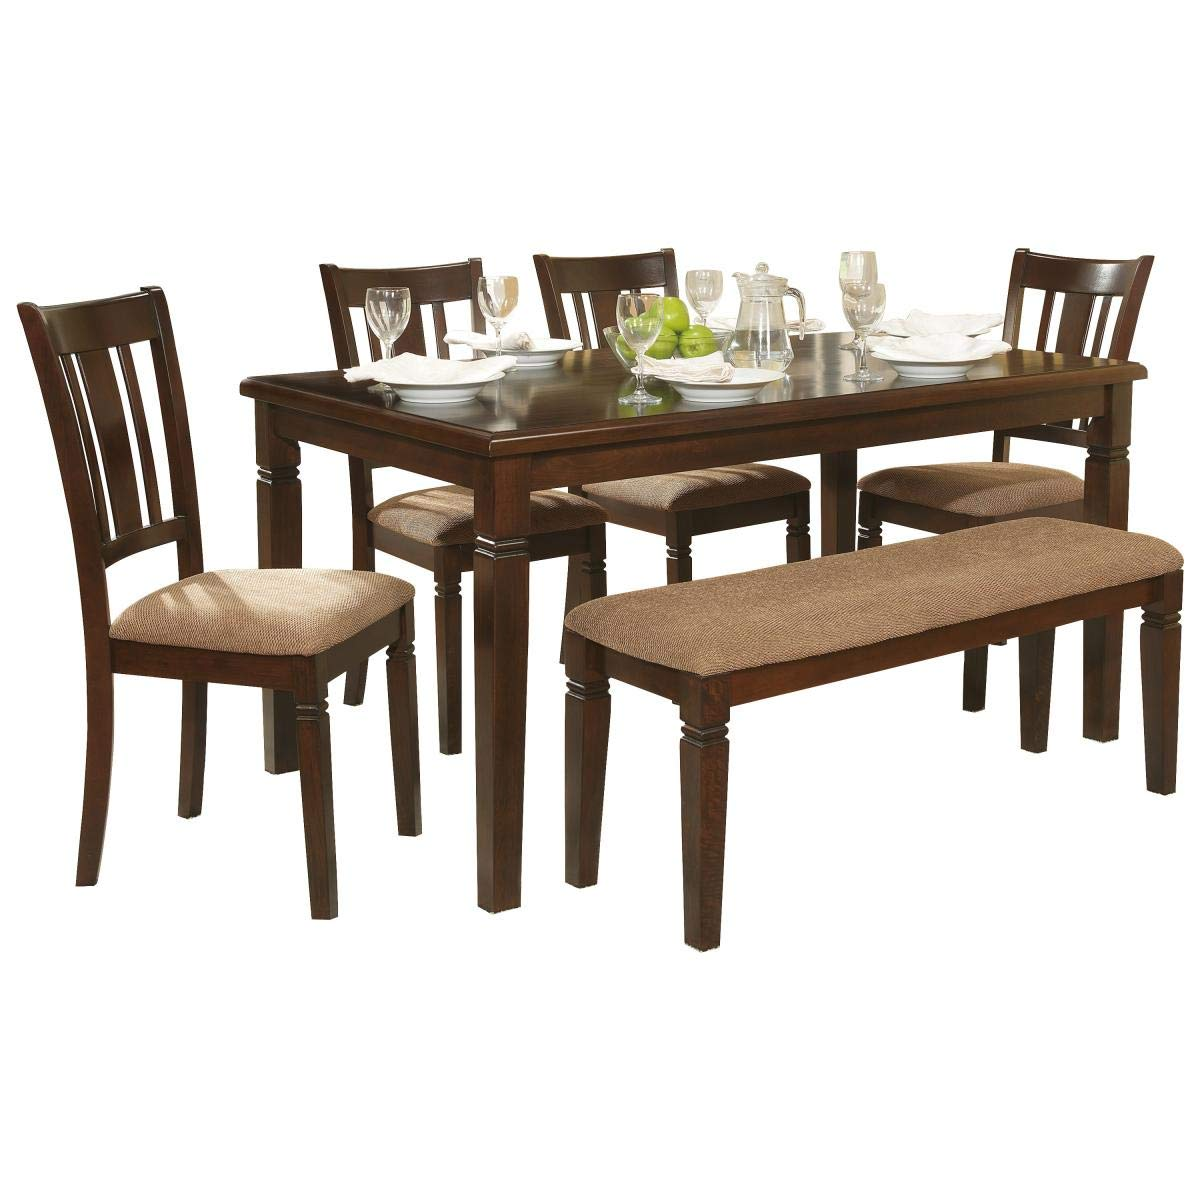 Homelegance Dining table for 6